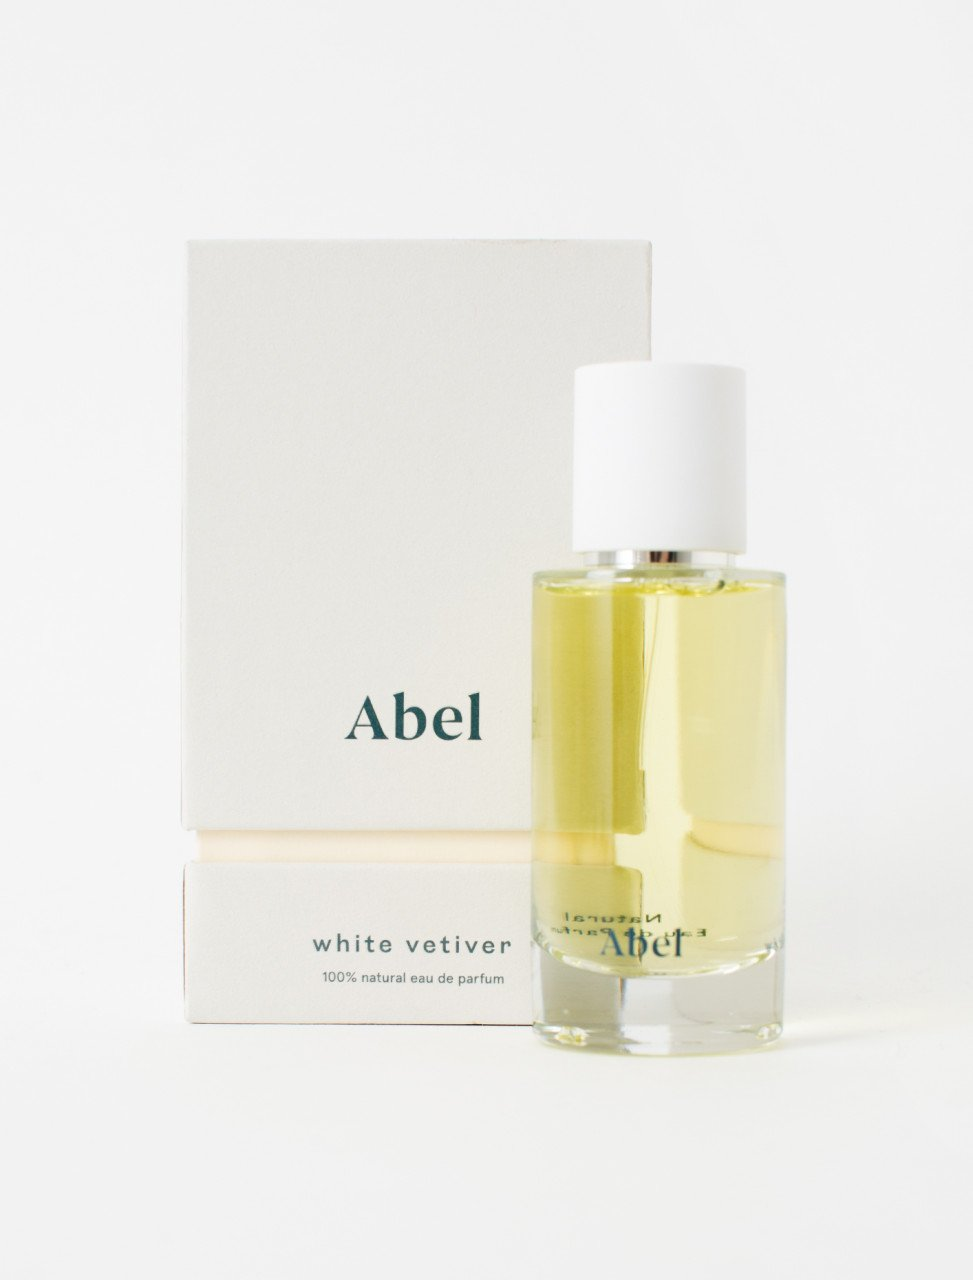 Abel white vetiver 50ml